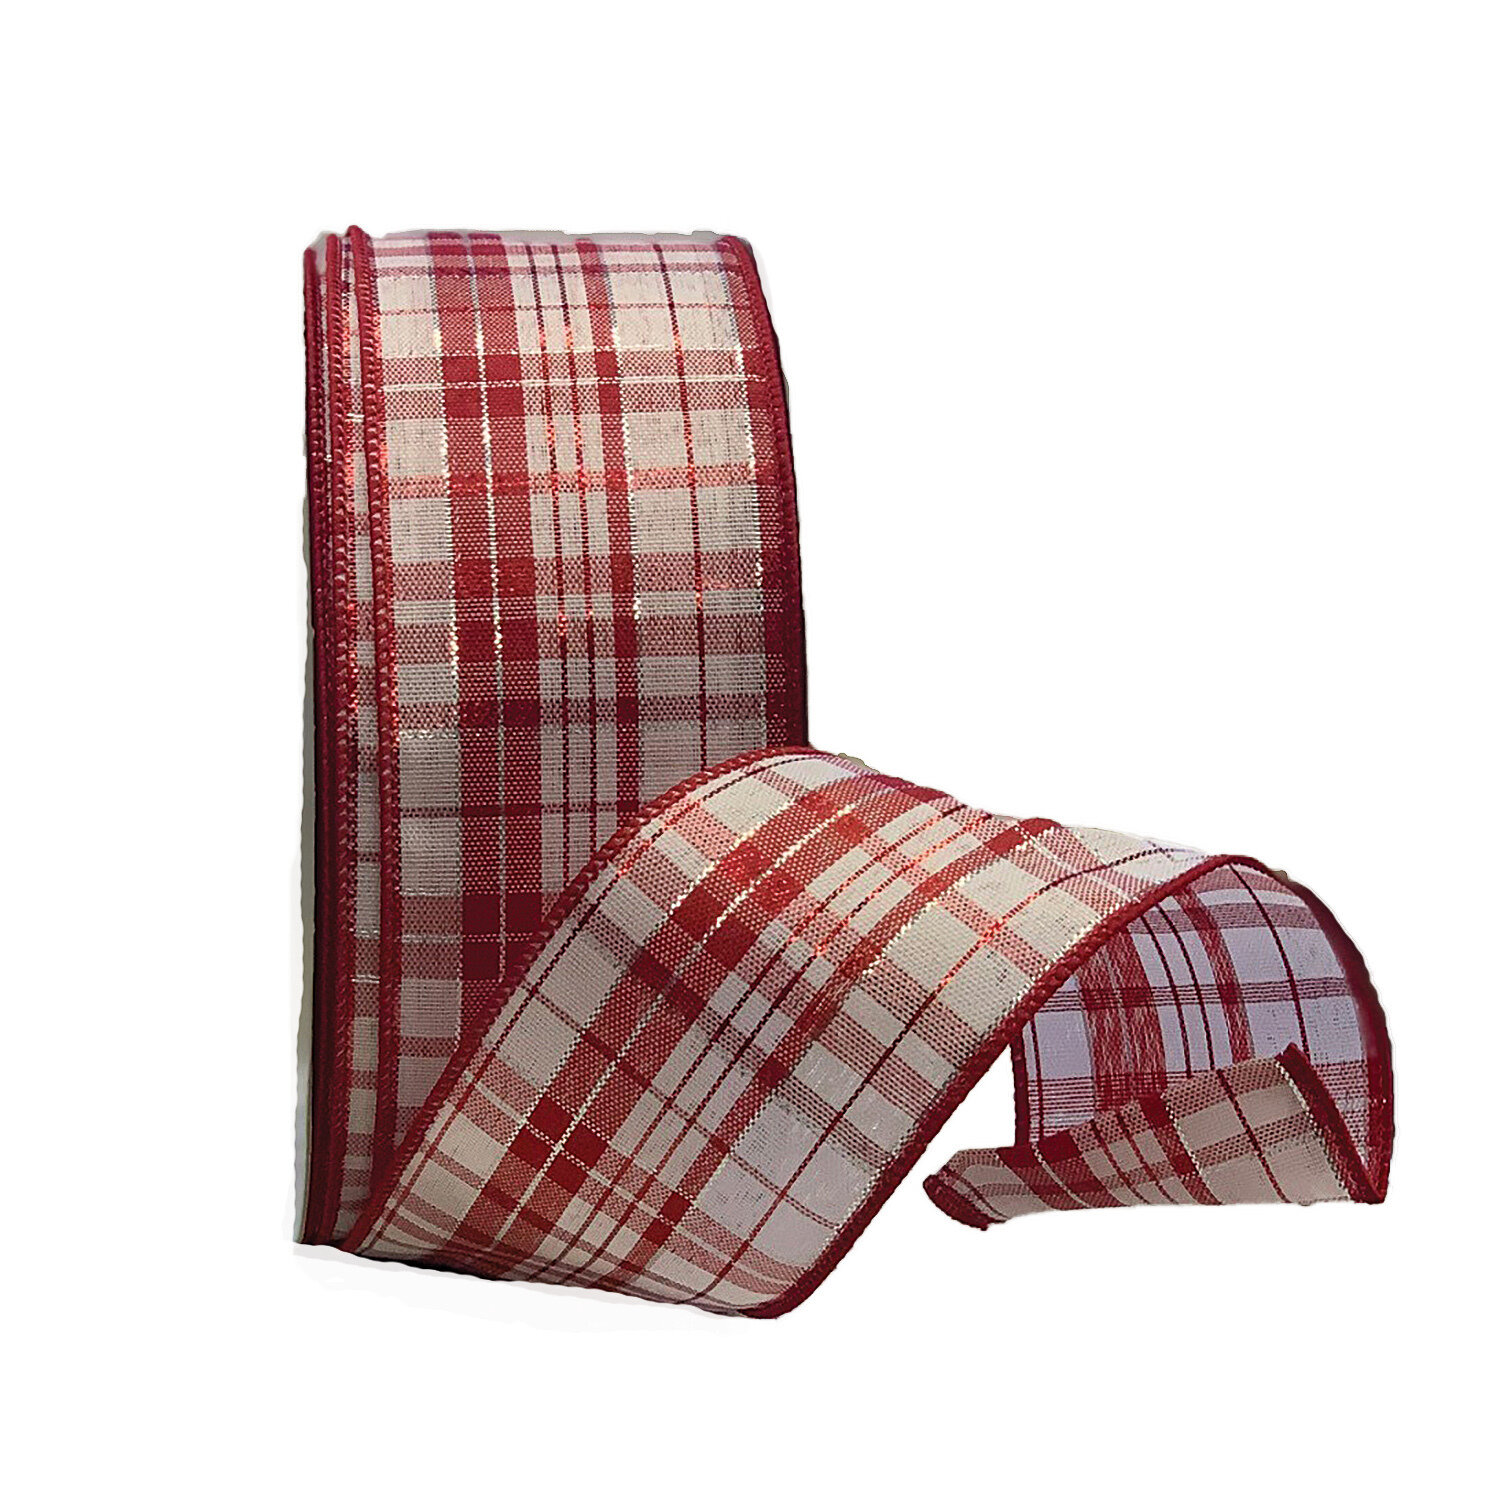 ​JOYFUL40 - #40 plaid red/white